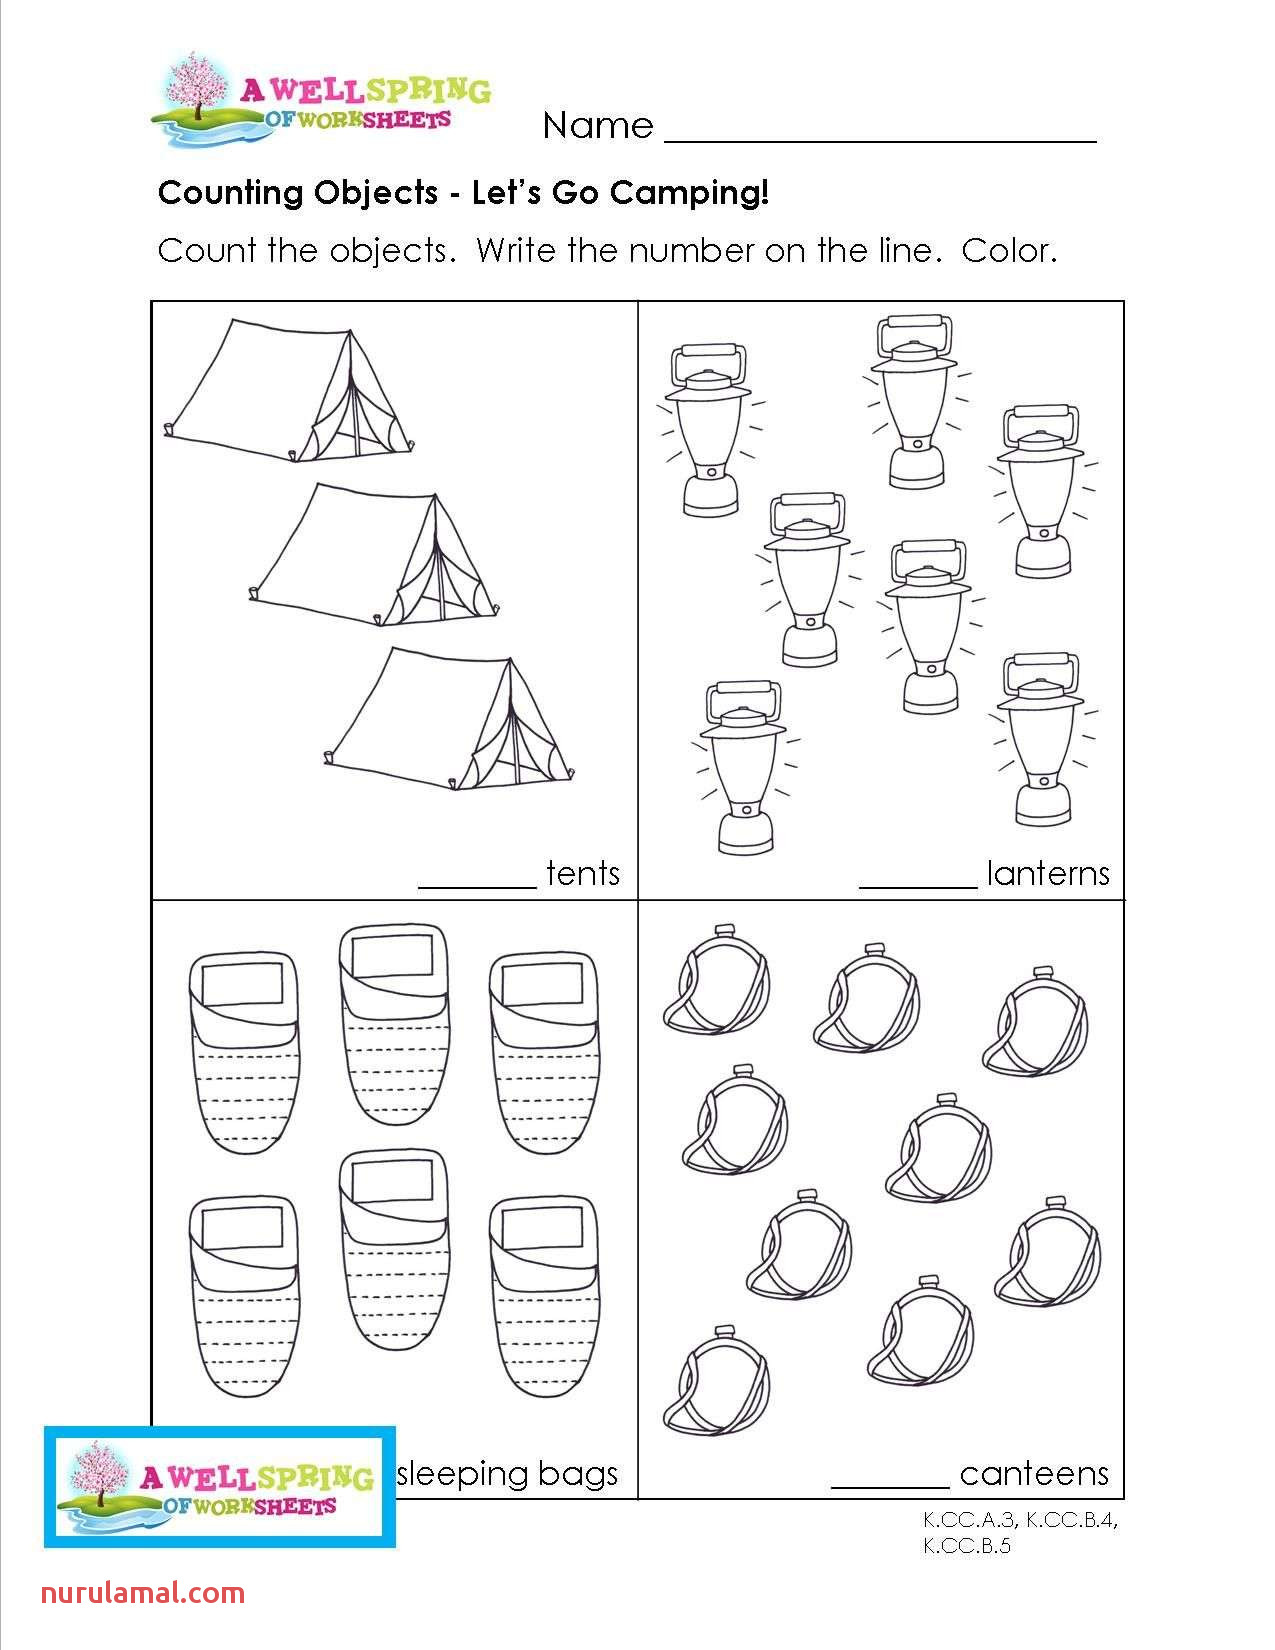 cut and paste worksheets for kindergarten unique camping worksheets proworksheet of cut and paste worksheets for kindergarten